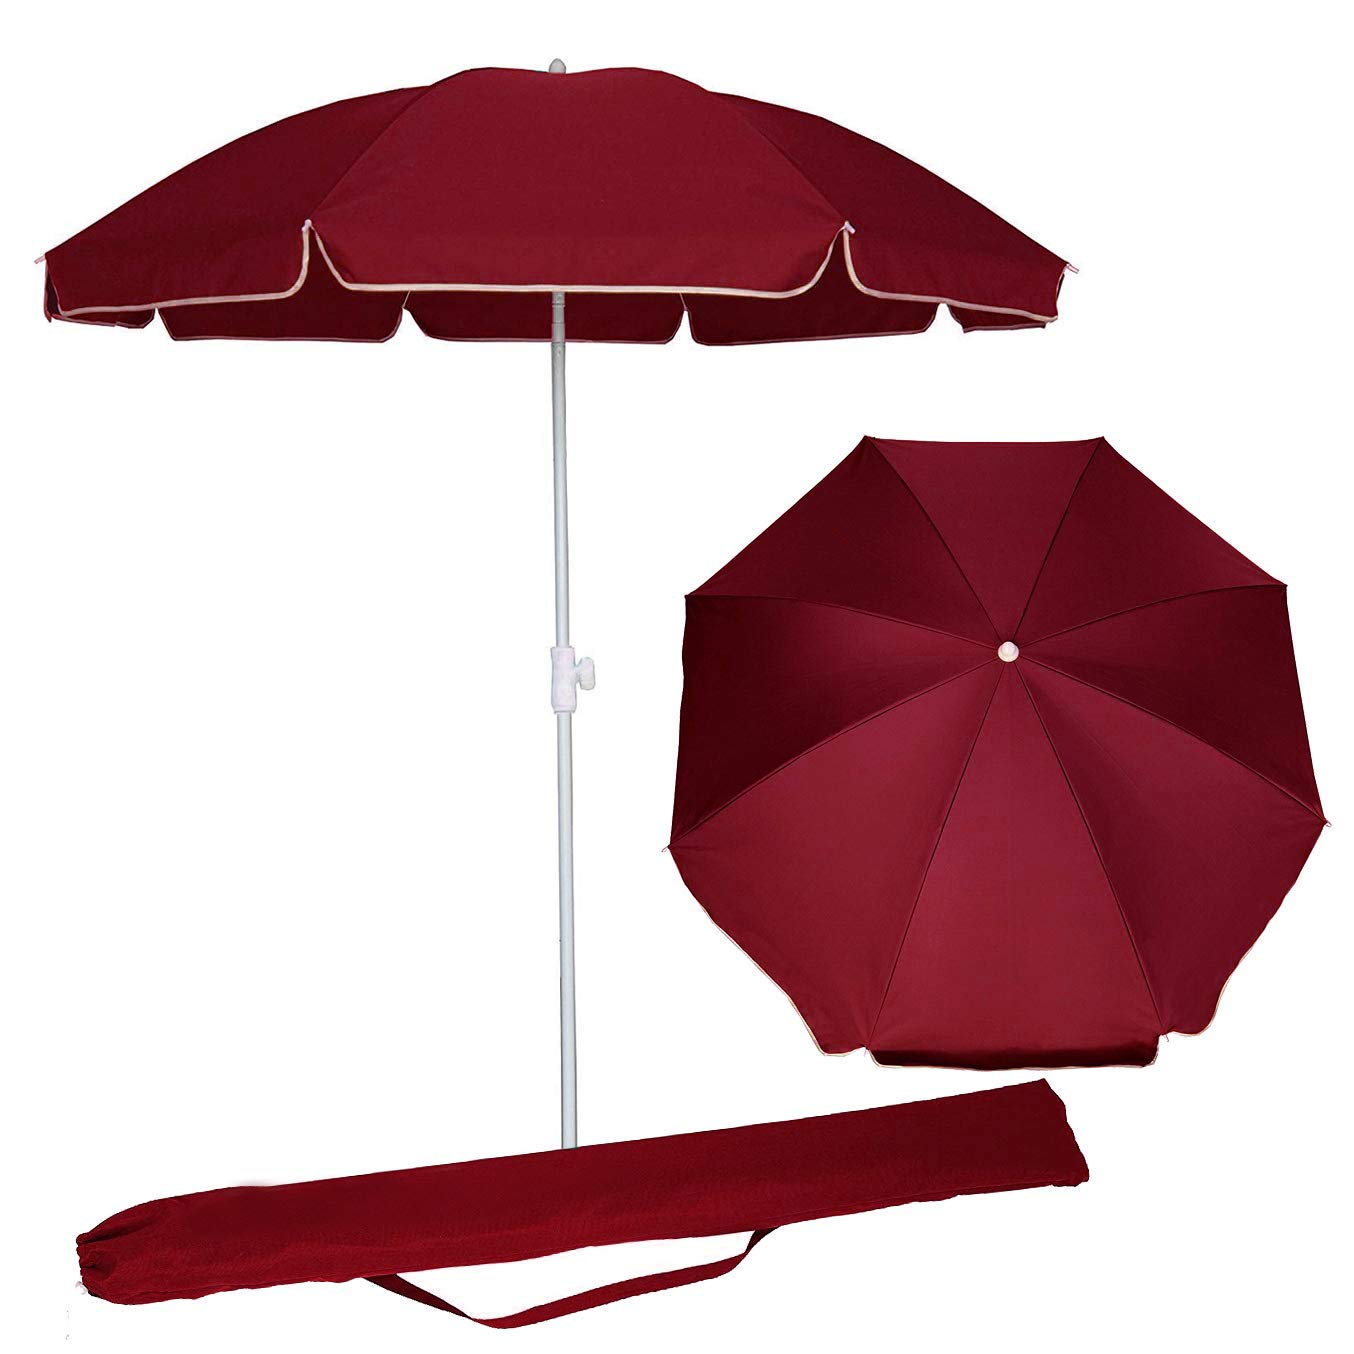 AMMSUN 6.5 ft Portable Outdoor Picnic Patio Beach Umbrella Sun Protection with Tilt for Outdoor Patio,Sport,Pool,Garden, Beach Red